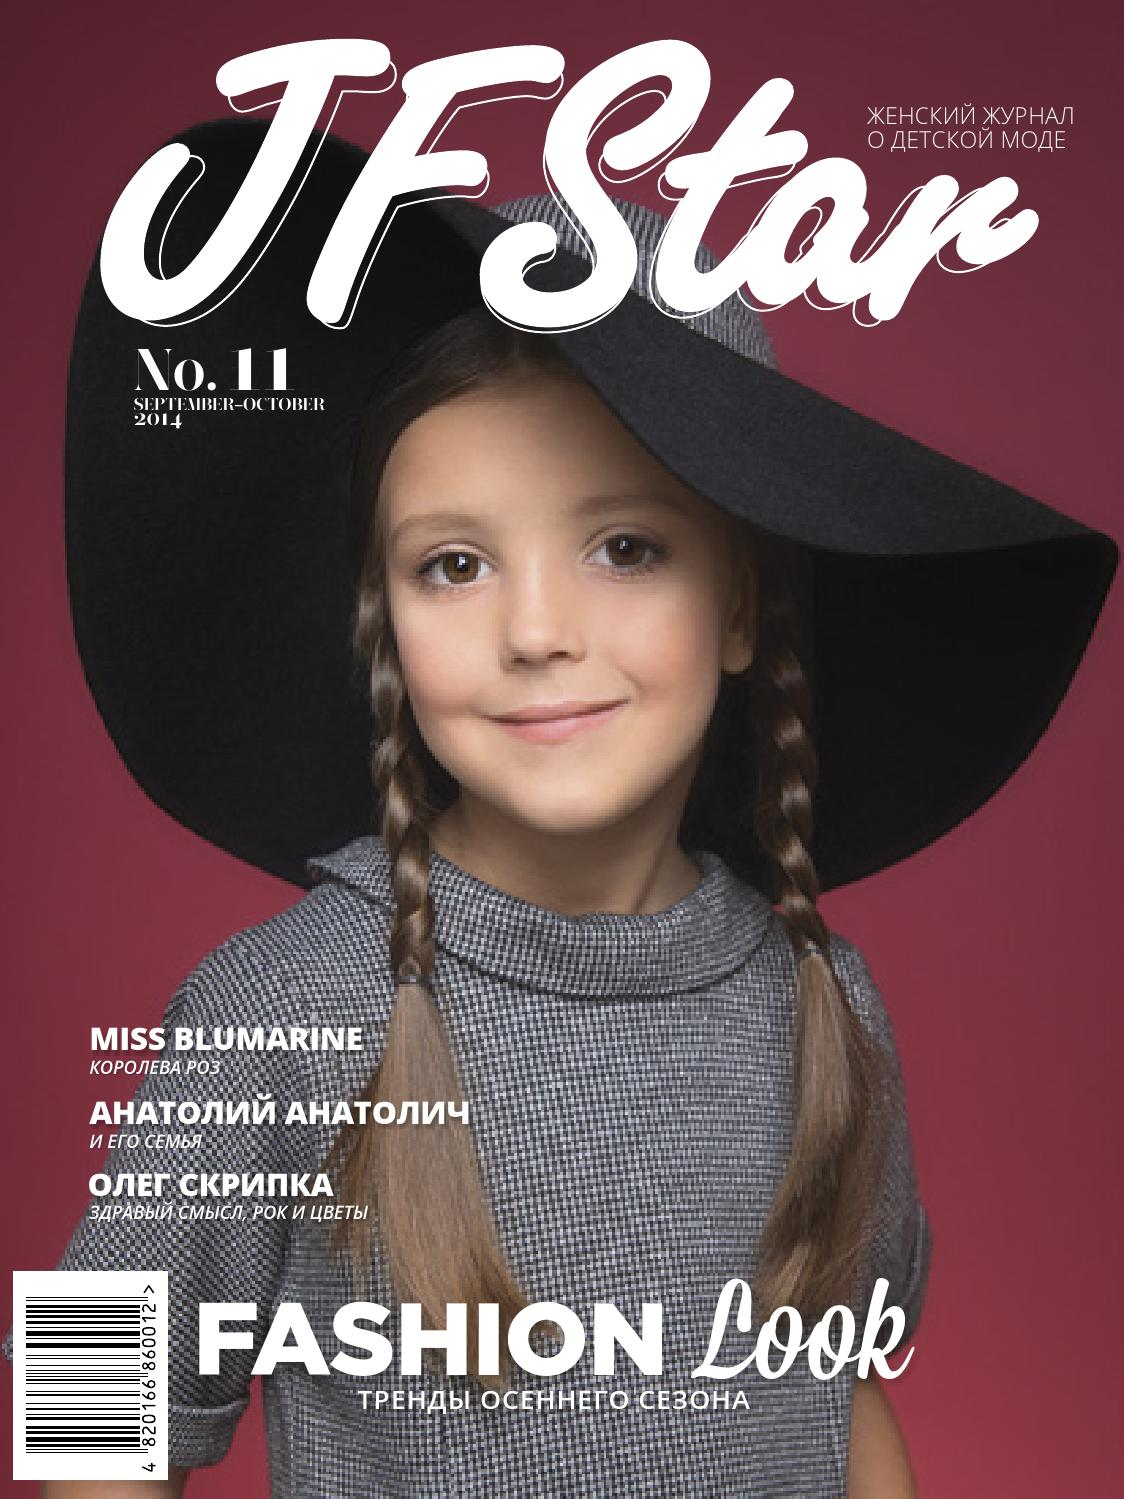 Fashion magazines for kids 7